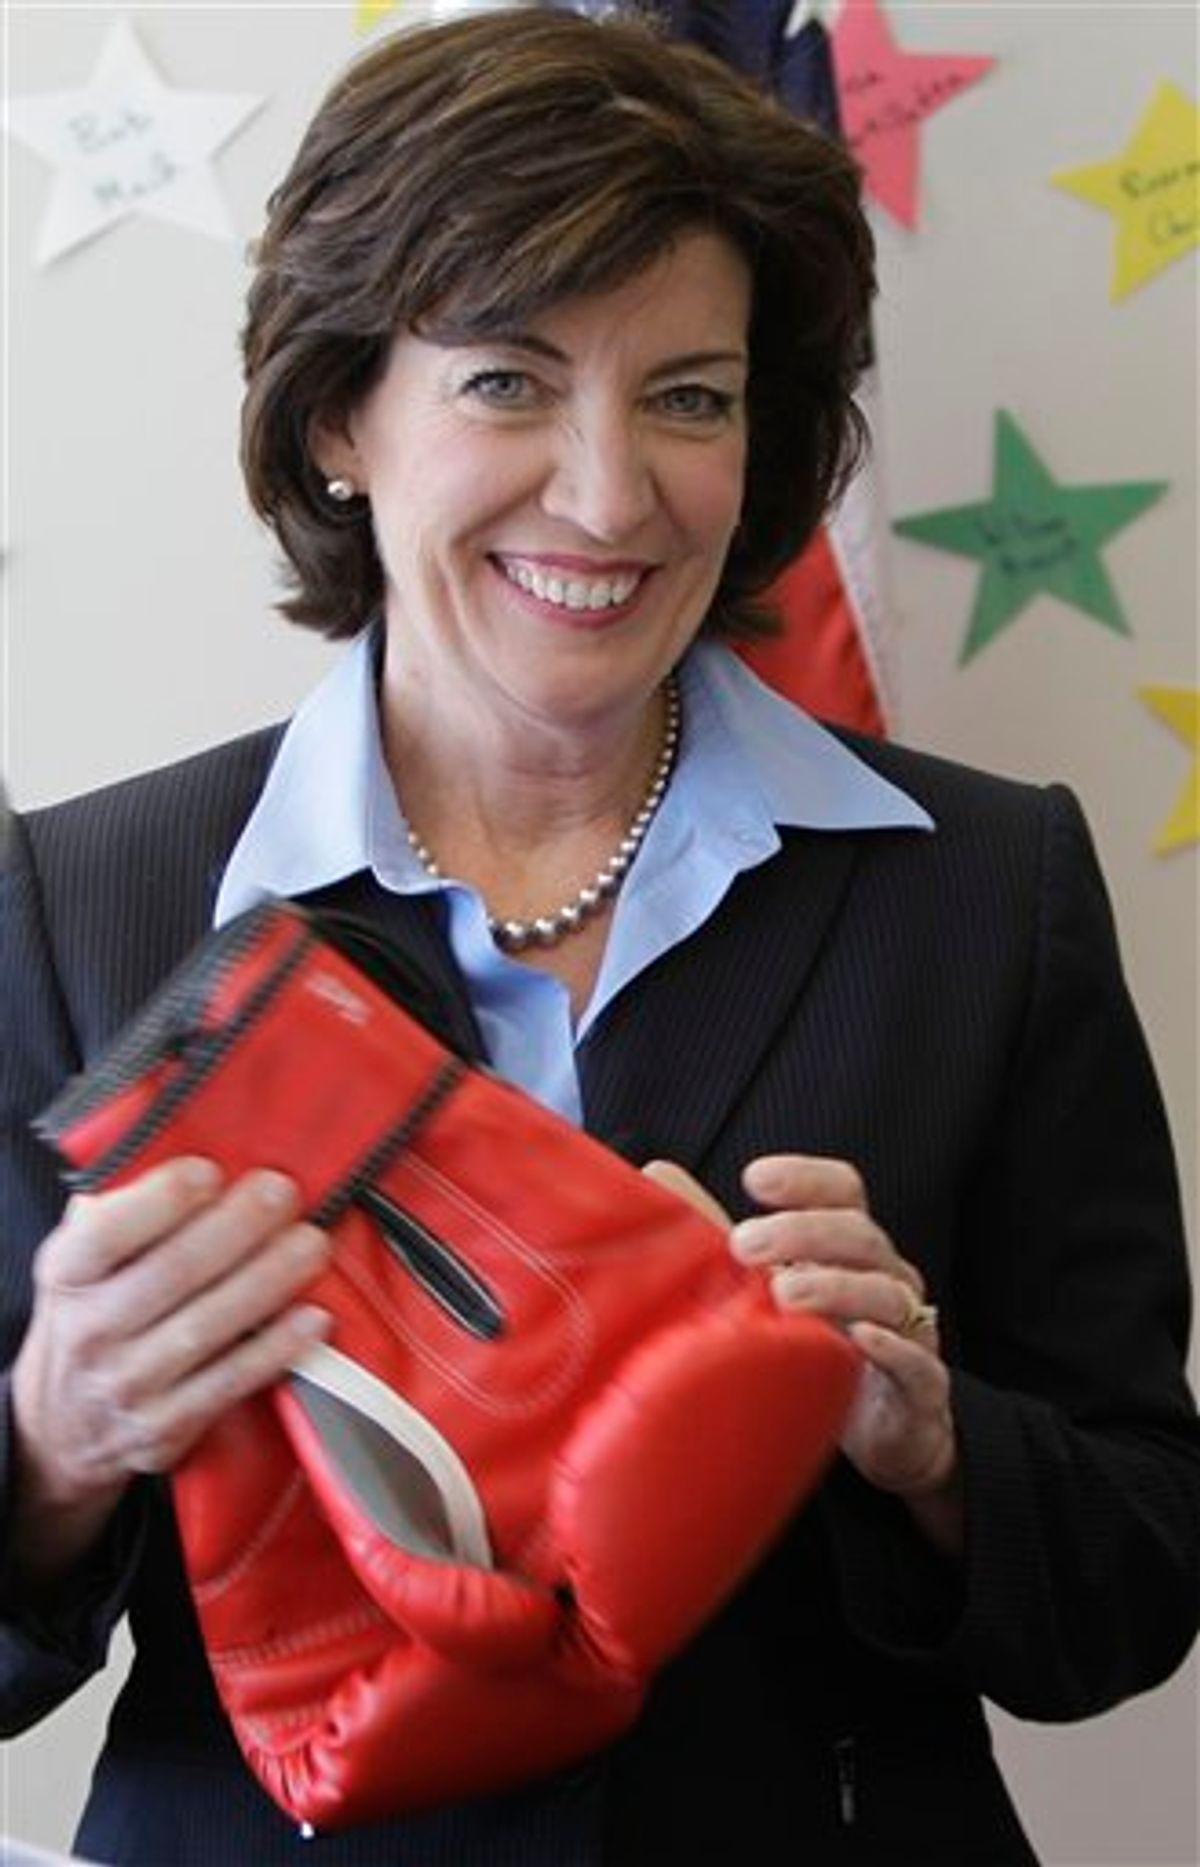 Democratic candidate for the 26th District Congressional seat, Kathy Hochul speaks while holding a pair of boxing gloves during a news conference in Clarence, N.Y., Monday, May 9, 2011. (AP Photo/David Duprey) (AP)